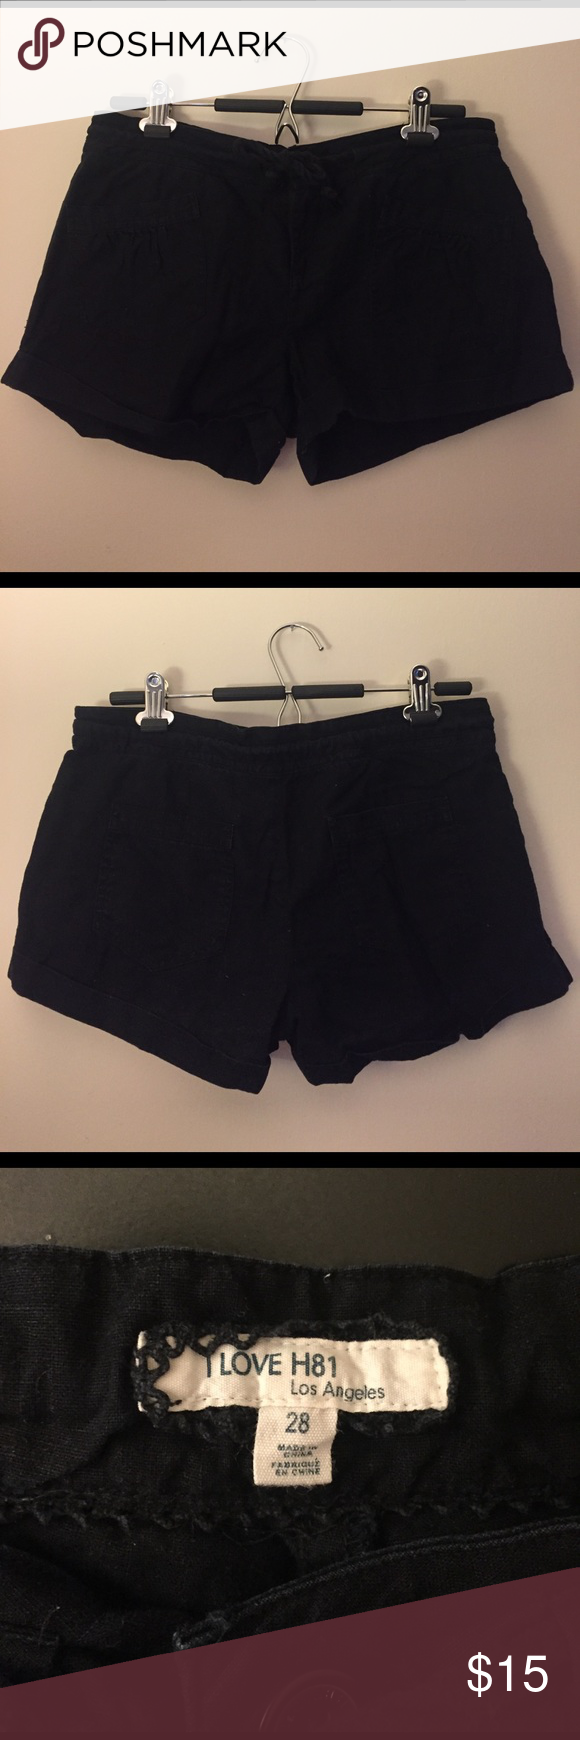 Forever 21 Black Cotton Shorts Forever 21 Black Cotton Shorts, size 28. EUC, perfect for summer! Forever 21 Shorts